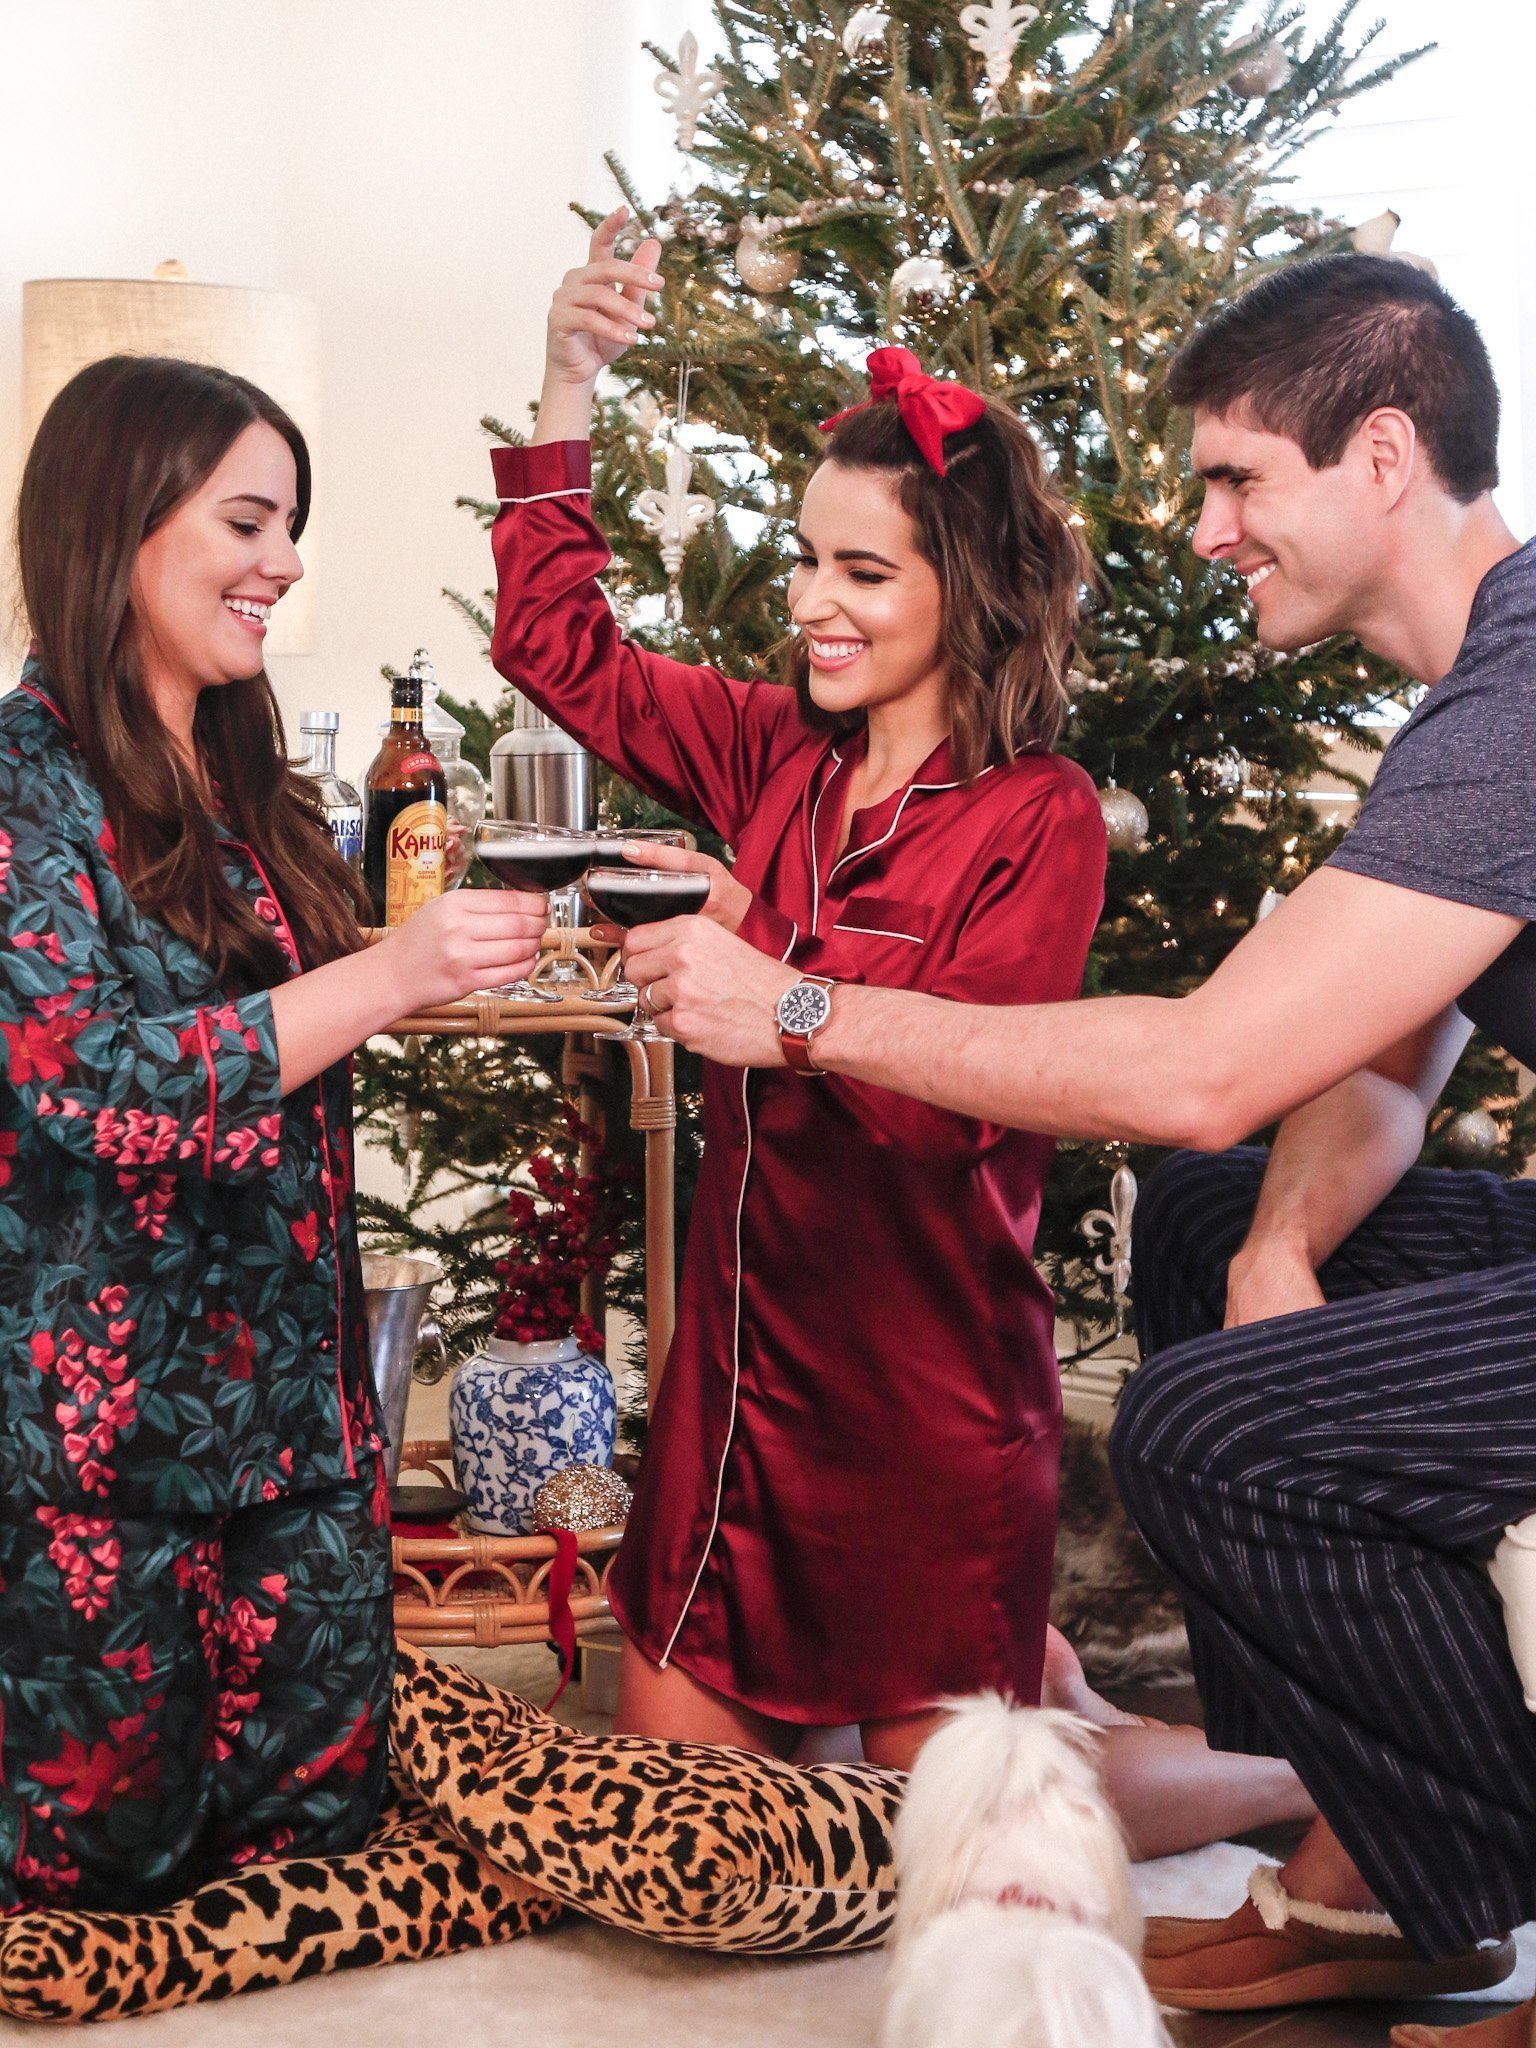 friends holiday pajama party cheers